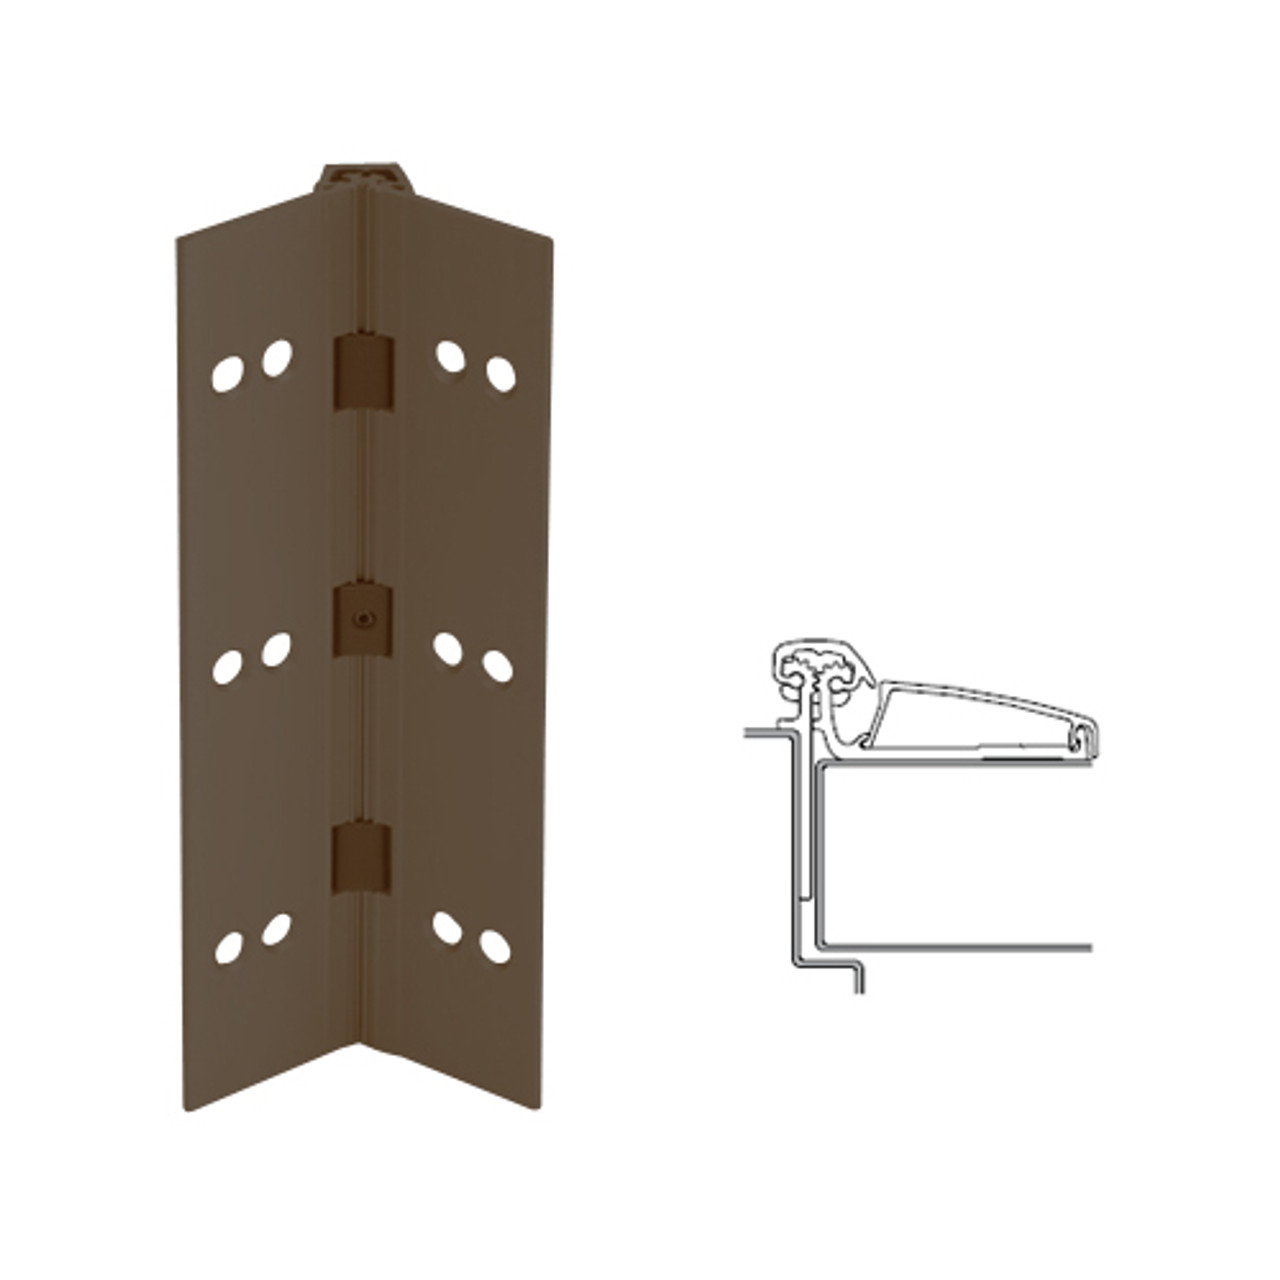 045XY-313AN-85-TFWD IVES Adjustable Half Surface Continuous Geared Hinges with Thread Forming Screws in Dark Bronze Anodized